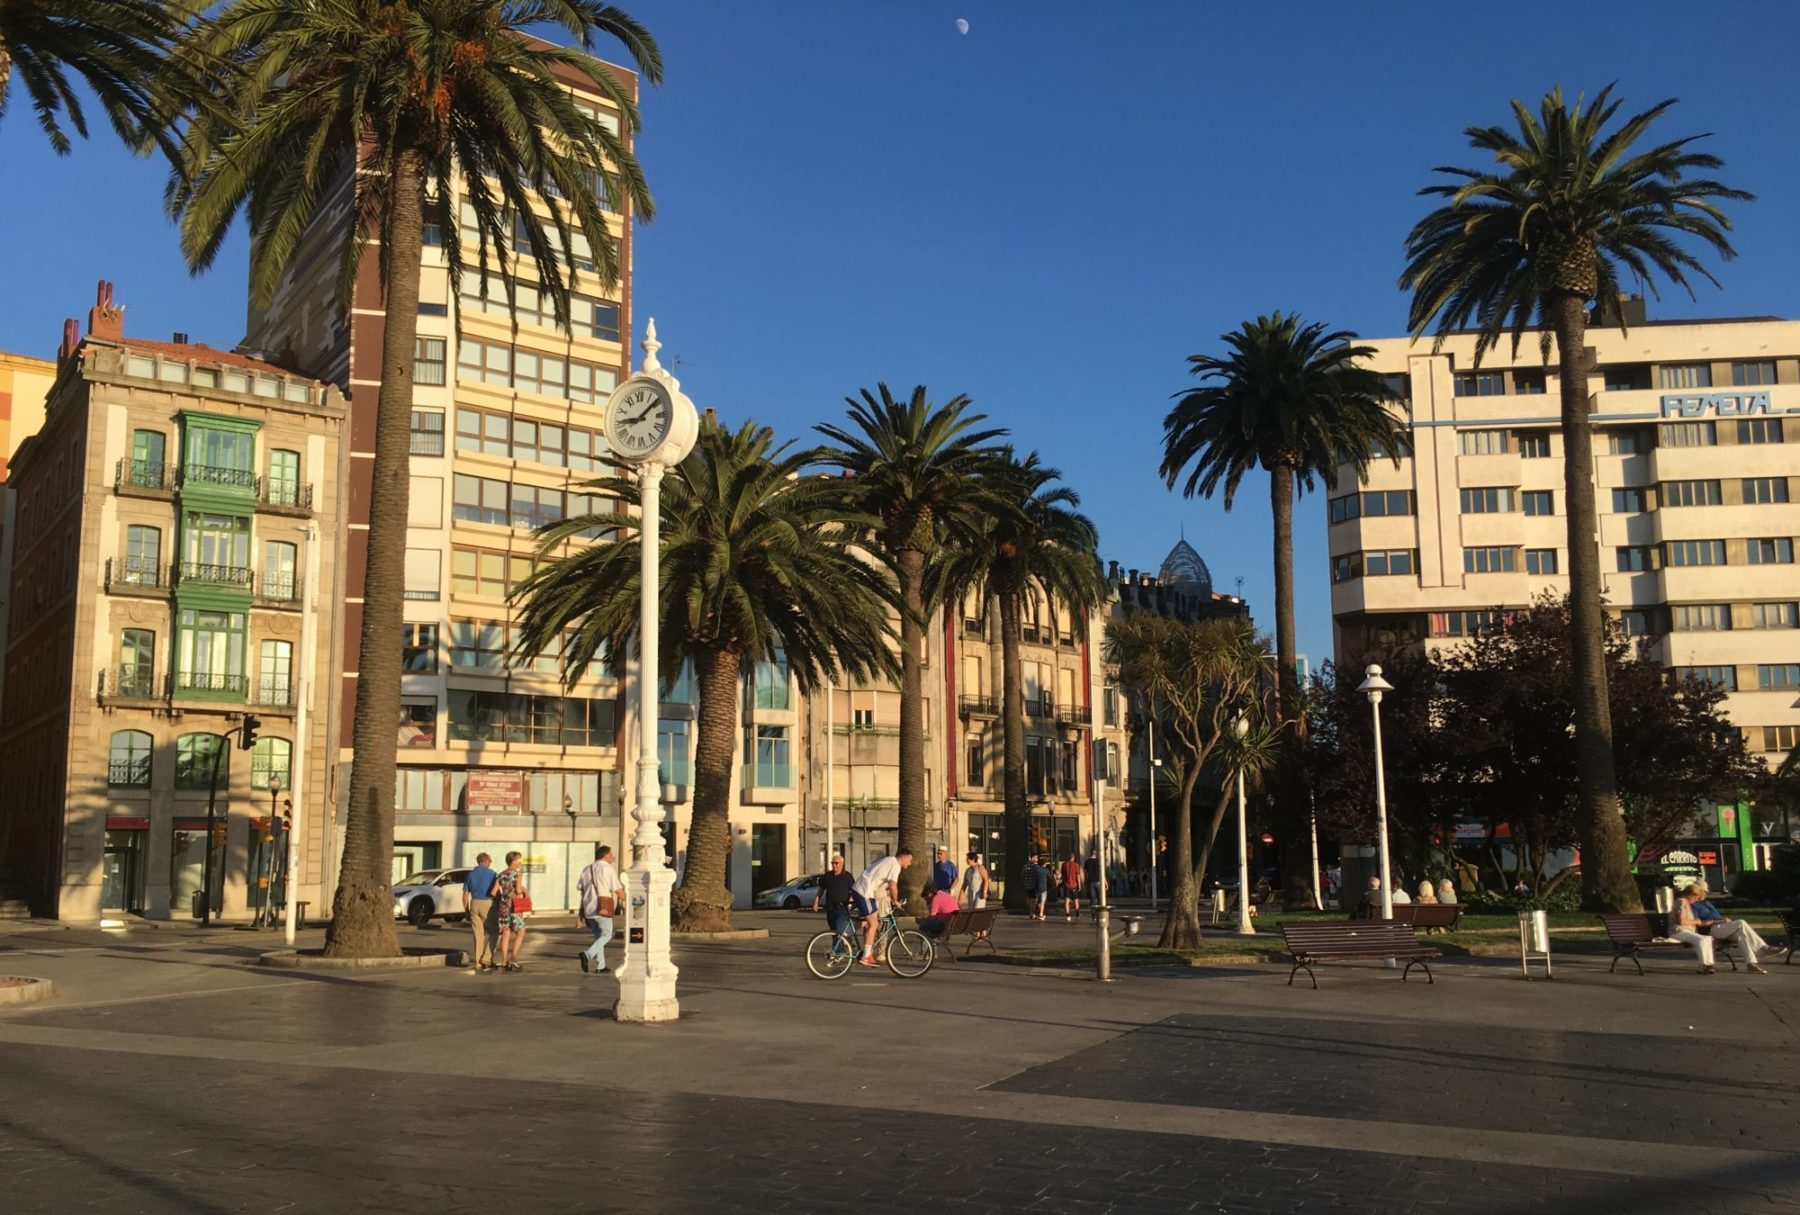 Hotels in Gijón - Where to Stay in Gijón